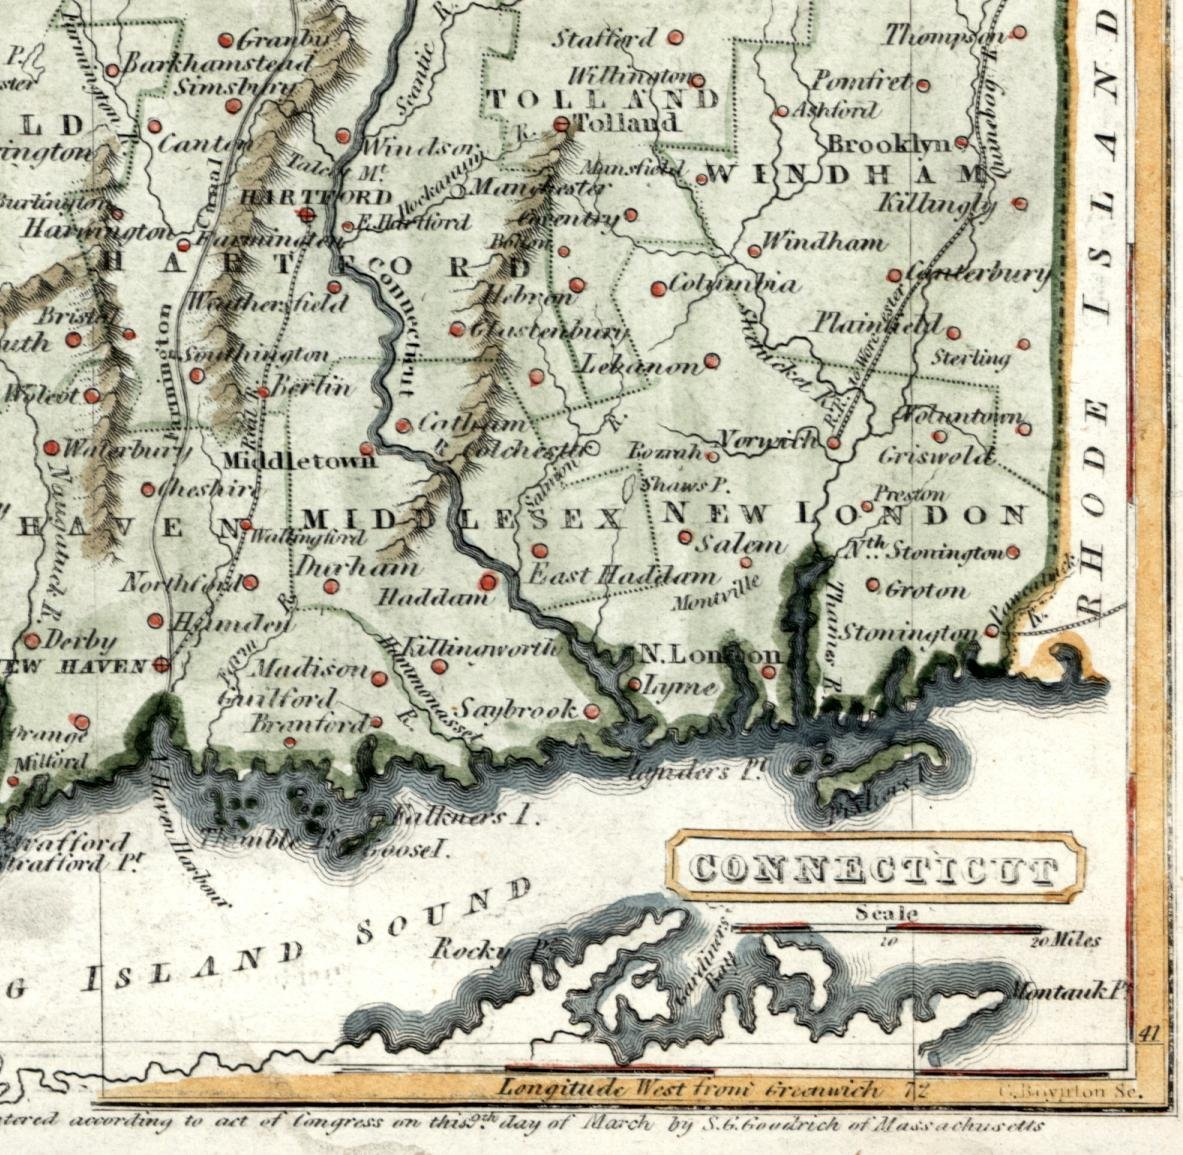 Amazon.com: Connecticut state c.1840 census potion ... on map of colchester ct, map of vernon rockville ct, map of southington ct, map of union ct, map of carolina pr, map of thompsonville ct, map of long island sound ct, map of connecticut, map of state of ct, map of windsor ct, map of north granby ct, map of mohegan sun ct, map of north haven ct, map of hamburg ct, map of wauregan ct, map of boston ct, map of stonington borough ct, map of webster ct, map of gaylordsville ct, map of woodbridge ct,